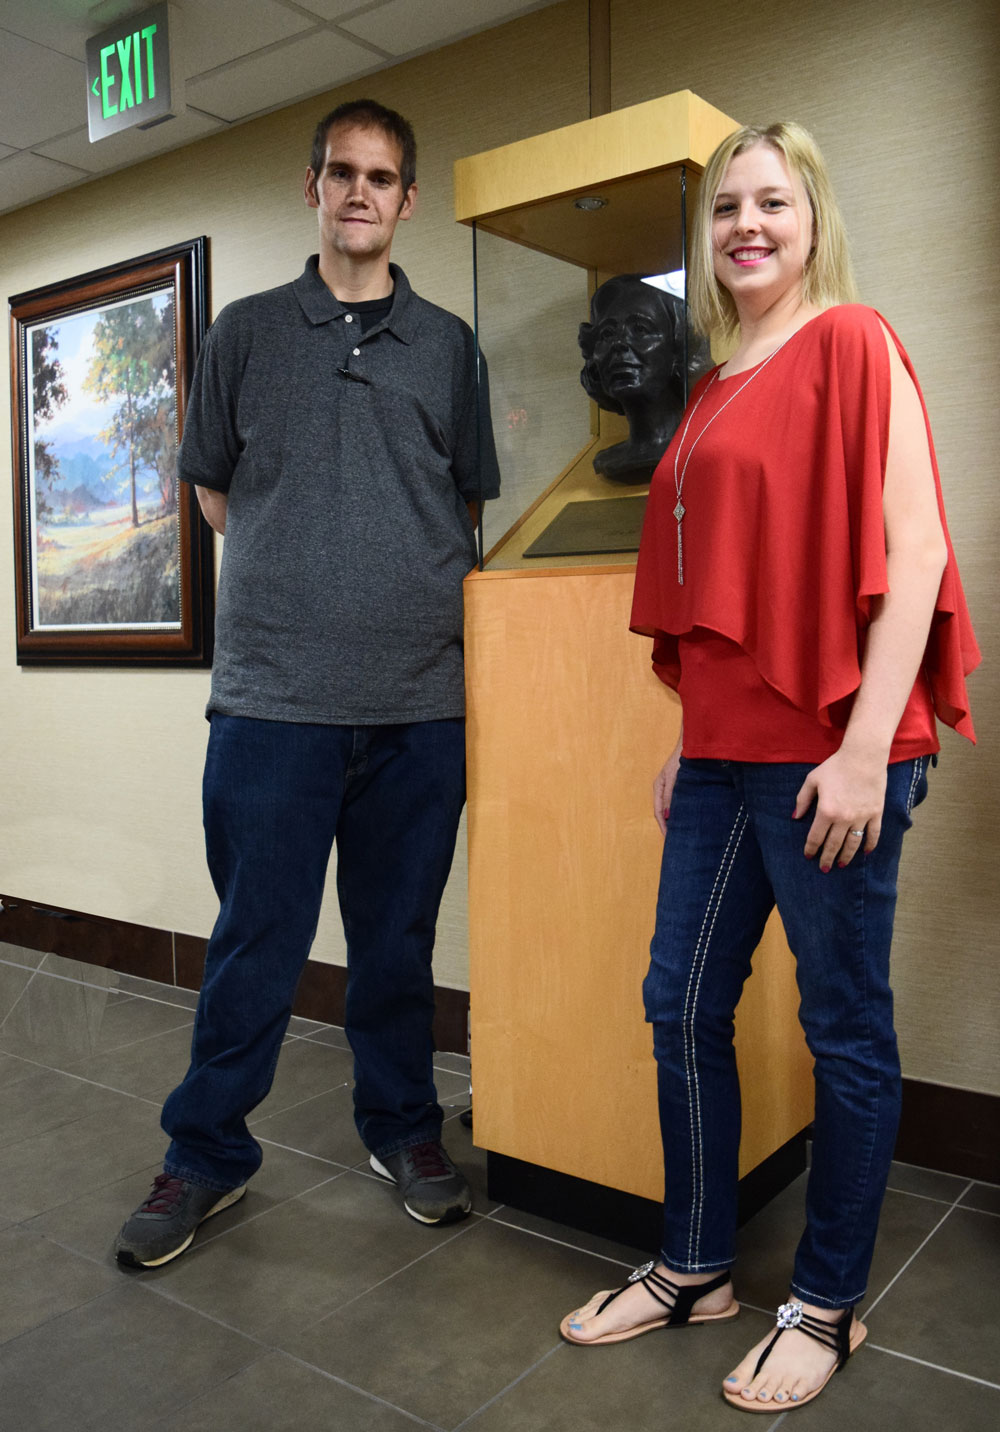 Together, Caleb and Danielle Neeley are on their way after surgeries by Jonathan Ray, MD, a bariatric surgeon at Fort Sanders Center for Bariatric Surgery.